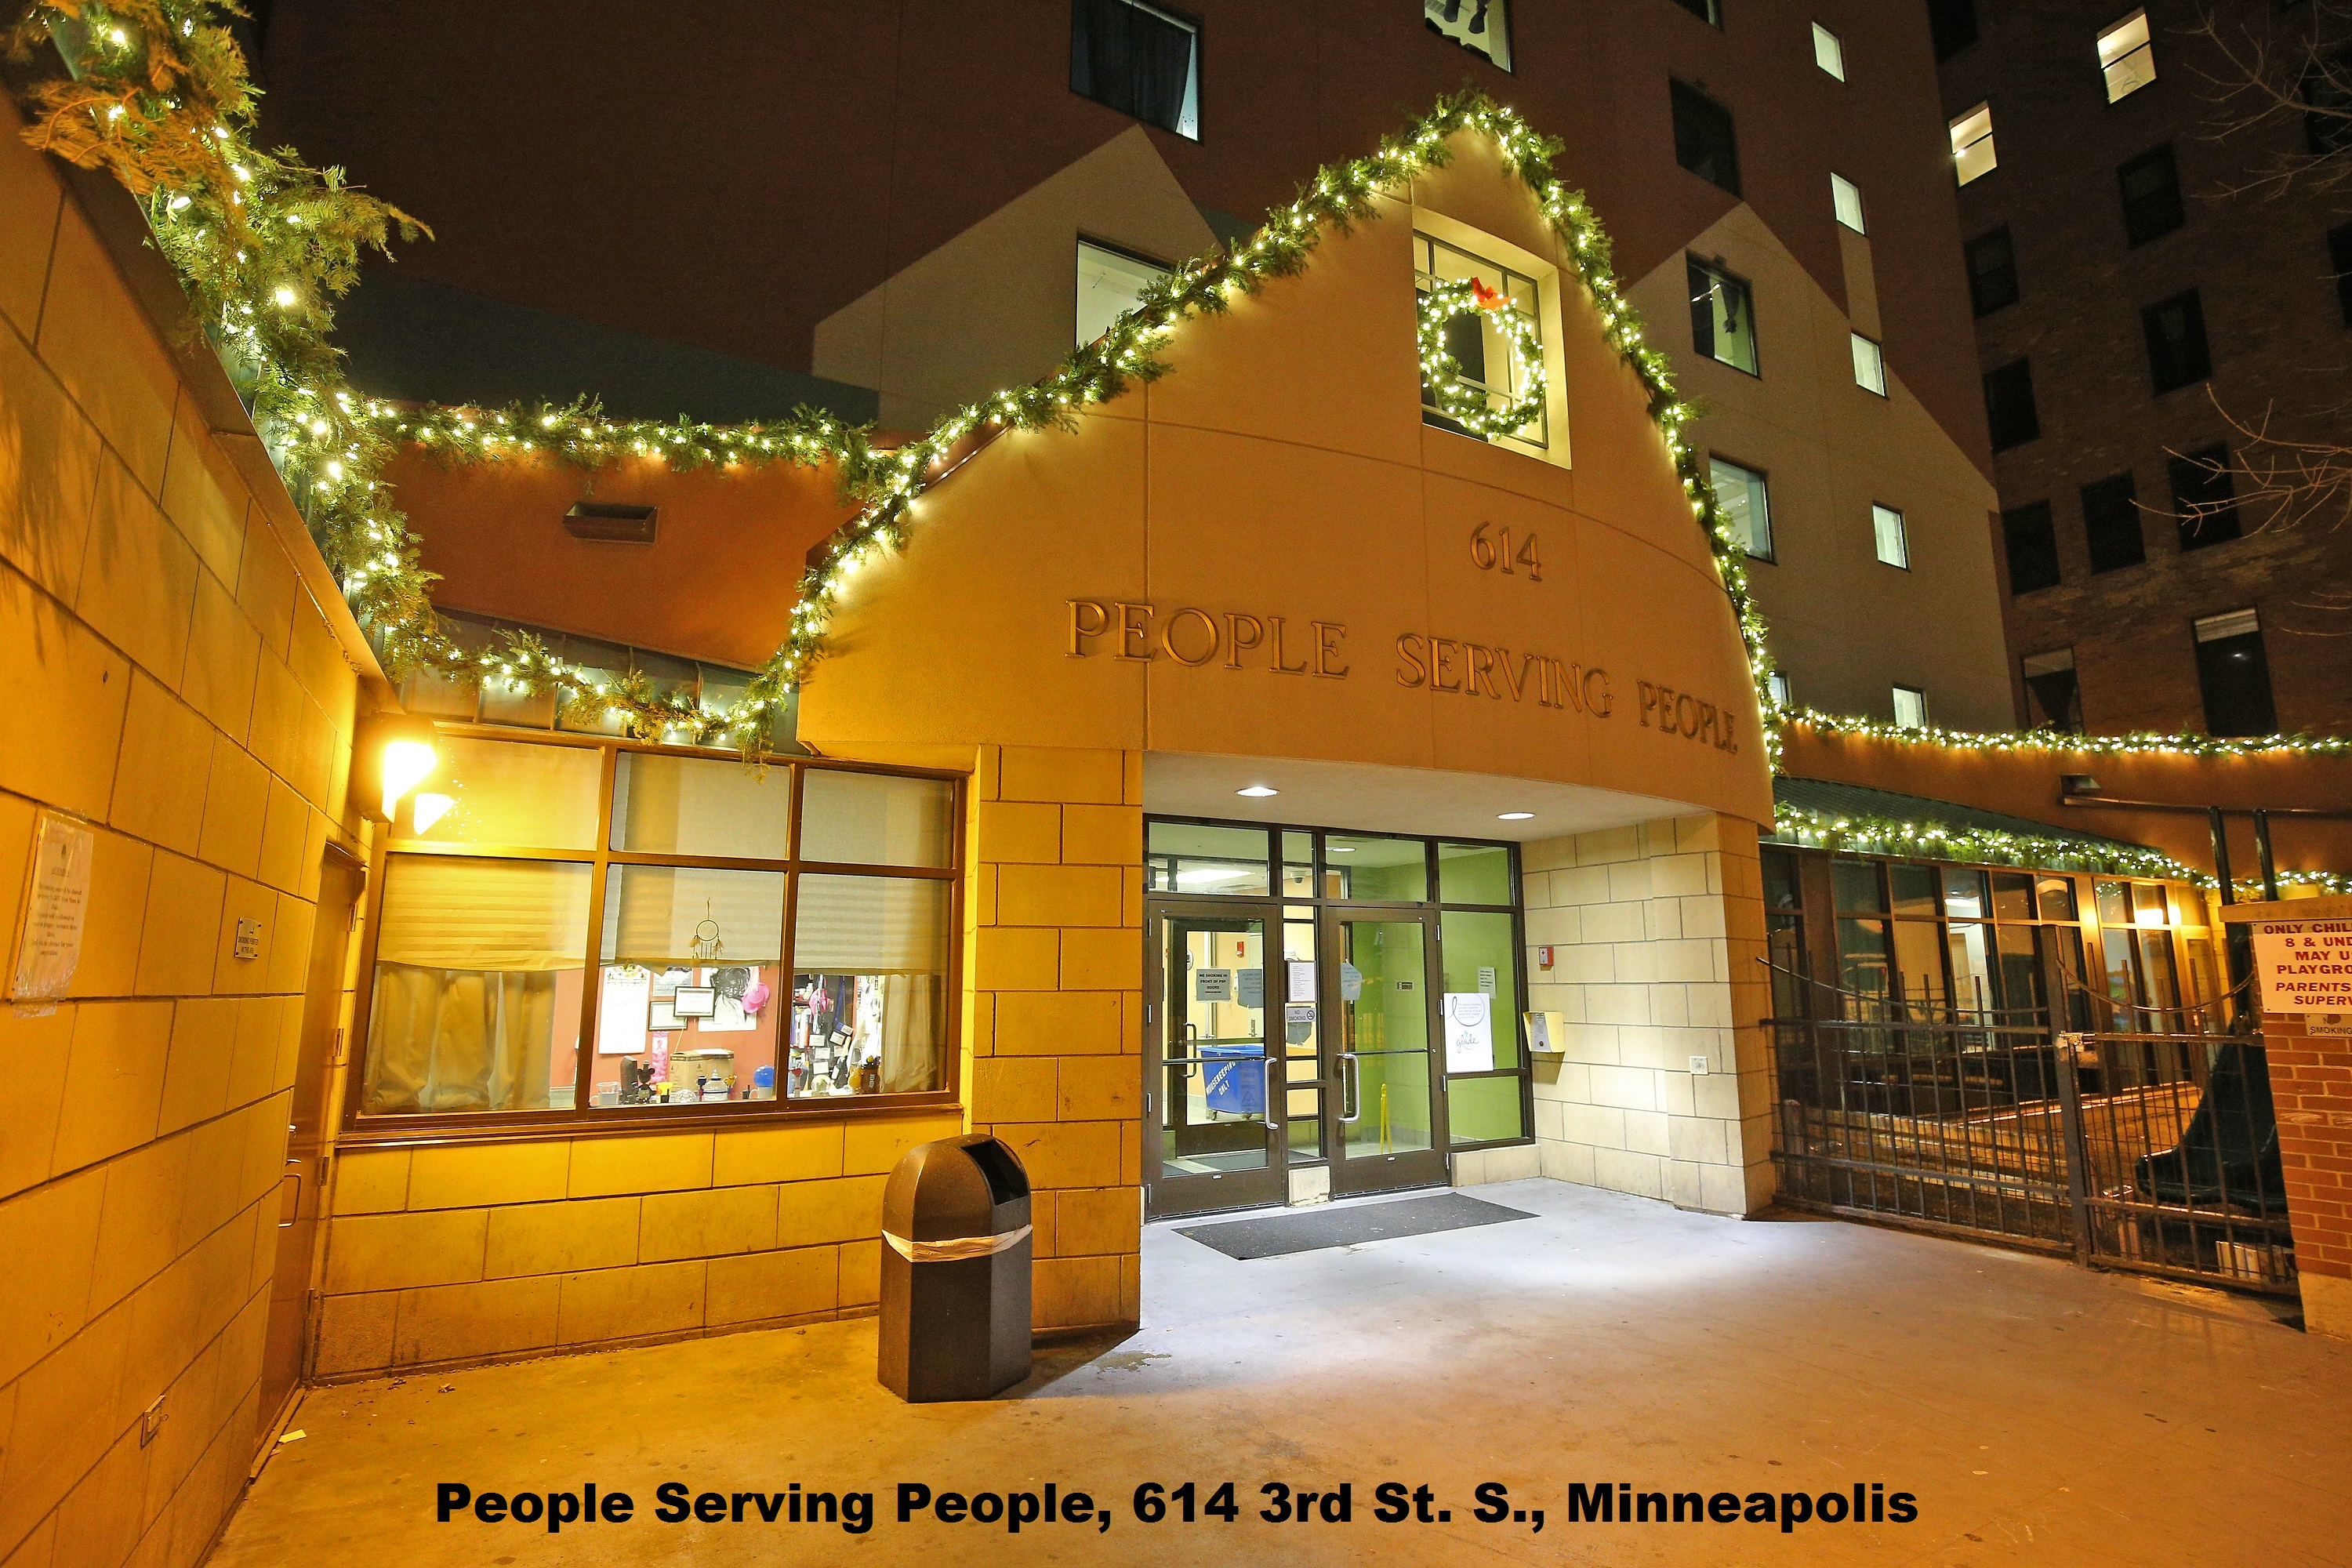 MINNEAPOLIS, MN - NOVEMBER 24: Glade® decorated the People Serving People shelter in Minneapolis, Minnesota on Tuesday, November 24, 2015 to help deliver holiday cheer and provide a bright and joyous destination for families to visit this holiday season. (Photo by Adam Bettcher/Getty Images for SC Johnson)